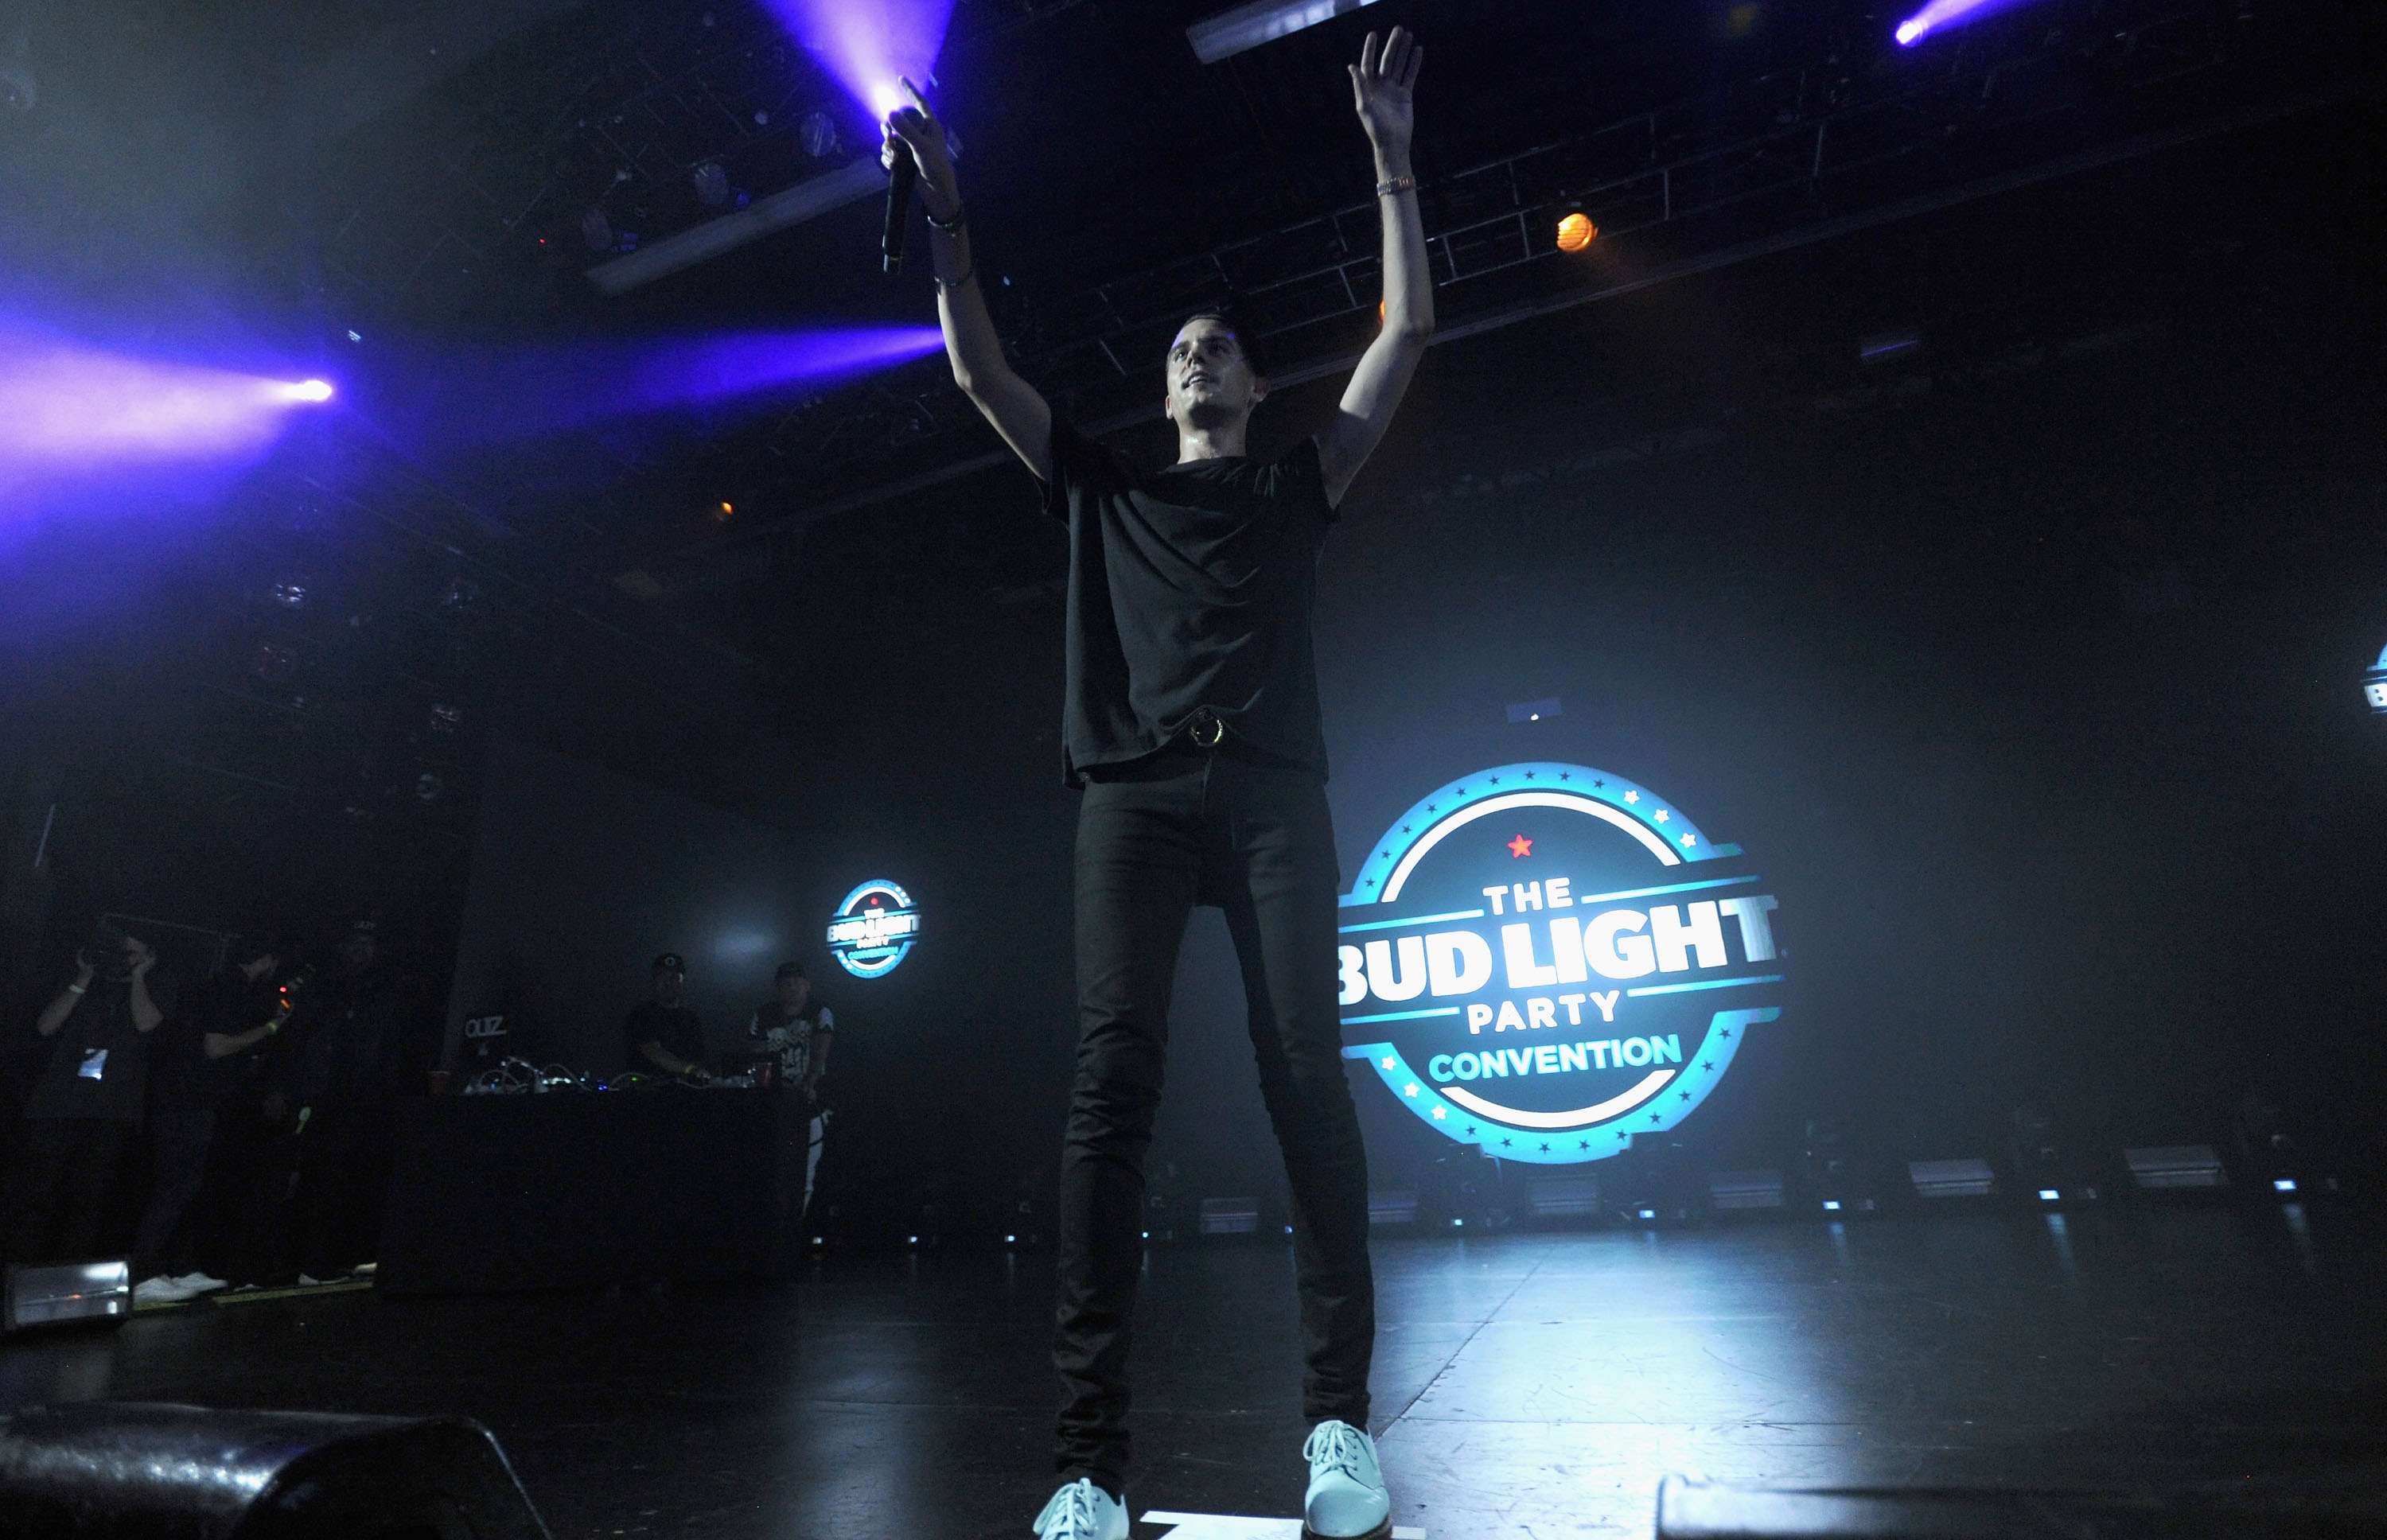 NEW YORK, NY - AUGUST 27: G-Eazy performs on stage at the Bud Light Party Conventions at PlayStation Theater on August 27, 2016 in New York City. (Photo by Brad Barket/Getty Images for Bud Light)